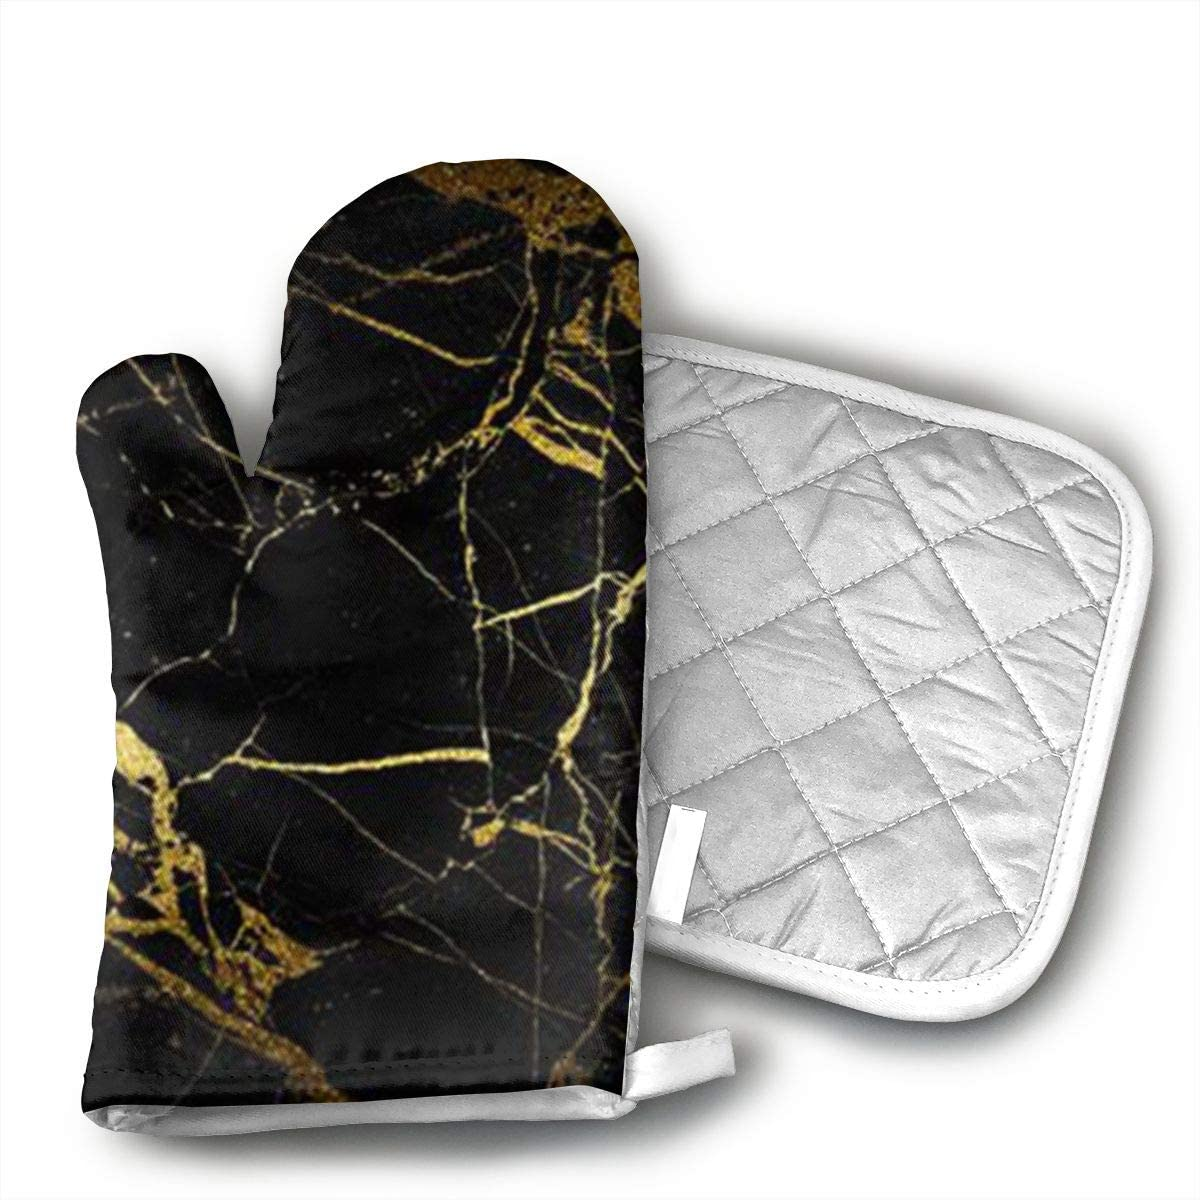 antcreptson Gold and Black Wallpaper Oven Mitts and Pot Holders Insulated Gloves & Kitchen Counter Safe Mats for Cooking BBQ Baking Grilling (2-Piece Set)